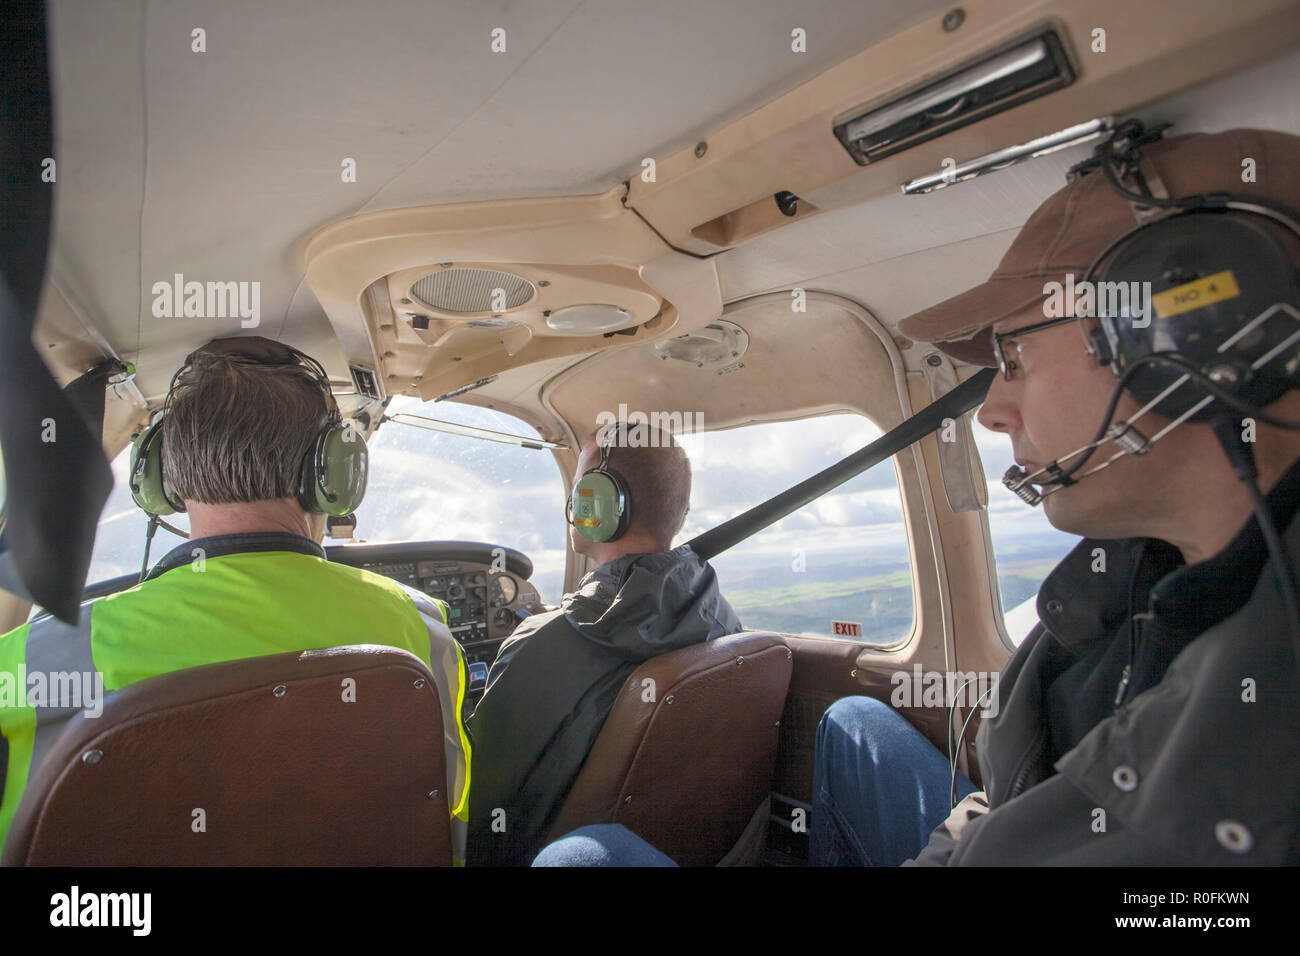 Pilot, co pilot, and passenger flying in a Piper PA-28 Cherokee light aircraft out of Northumbria Flying School, Newcastle Airport, Tyne and Wear, UK - Stock Image